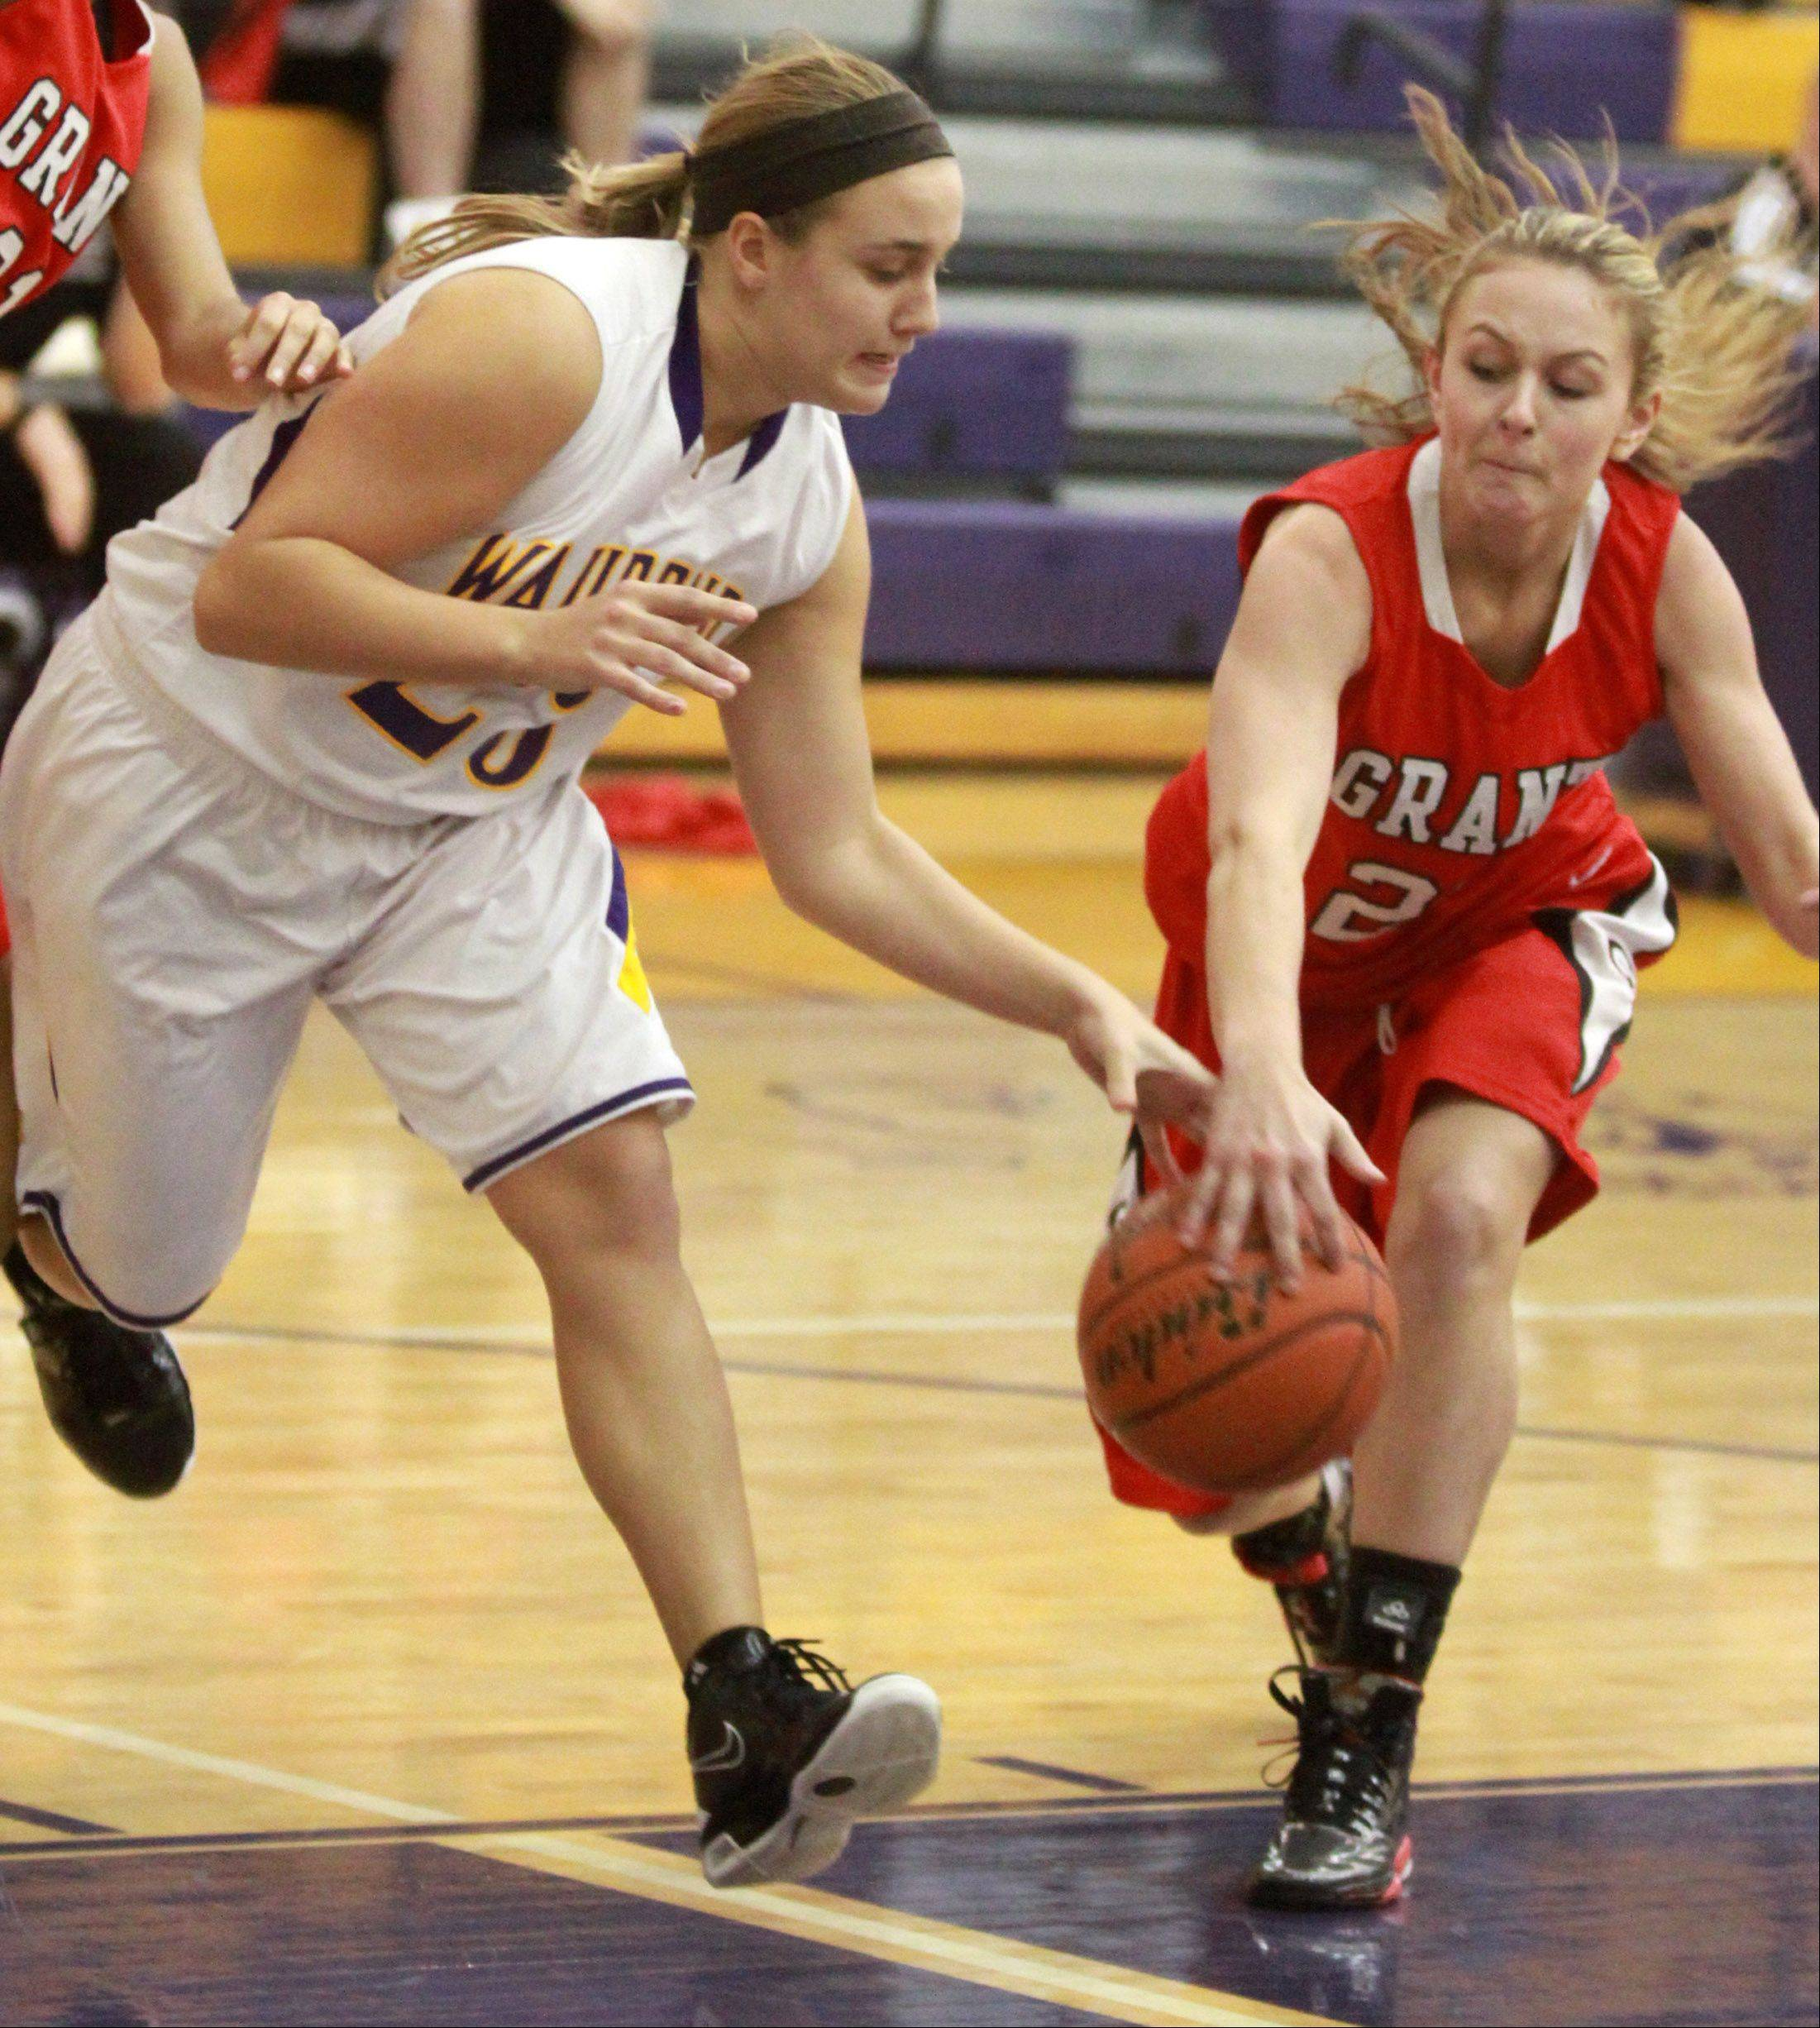 Wauconda's Becca Michelau, left, fights for a loose ball with Grant's Michelle Filip at Wauconda on Saturday.